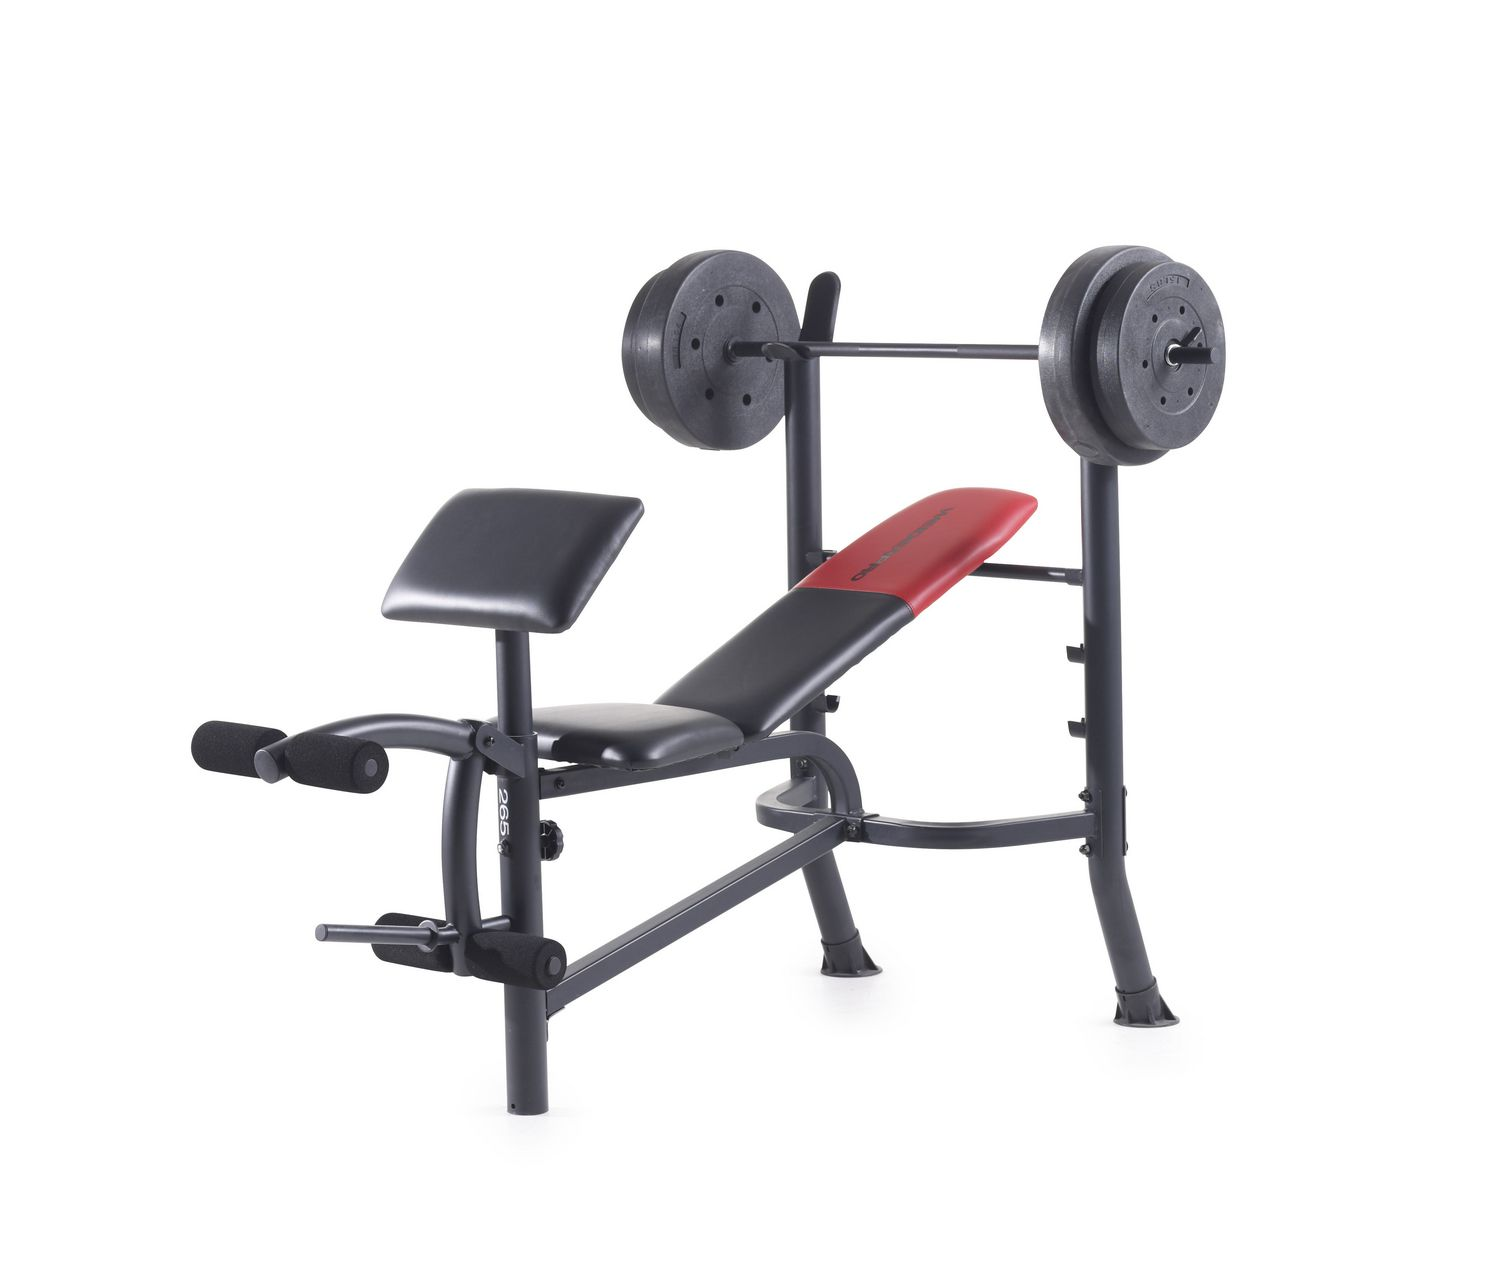 Weider Pro 265 Weight Bench Walmart Canada